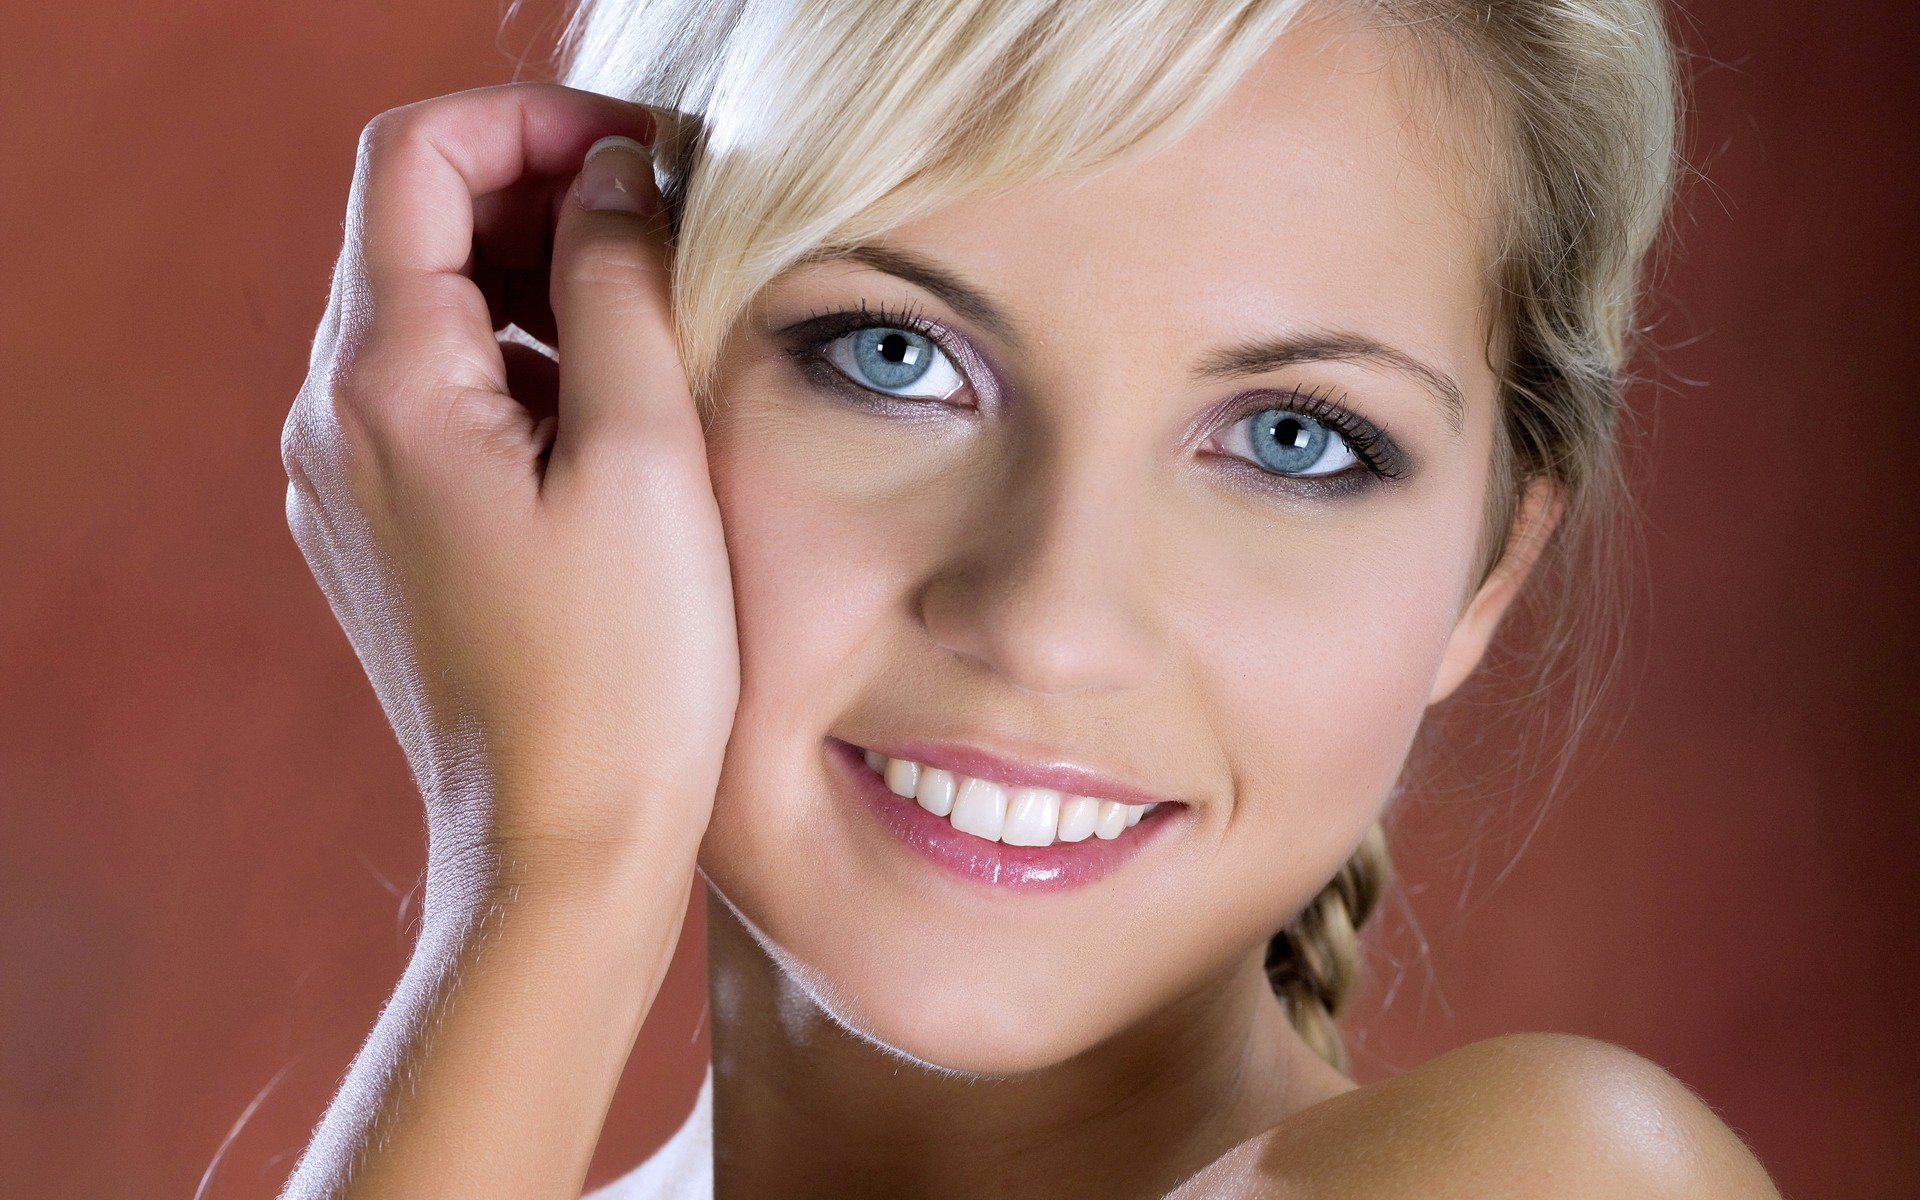 Blondes Women Jenni Gregg Smiling Faces Wallpaper